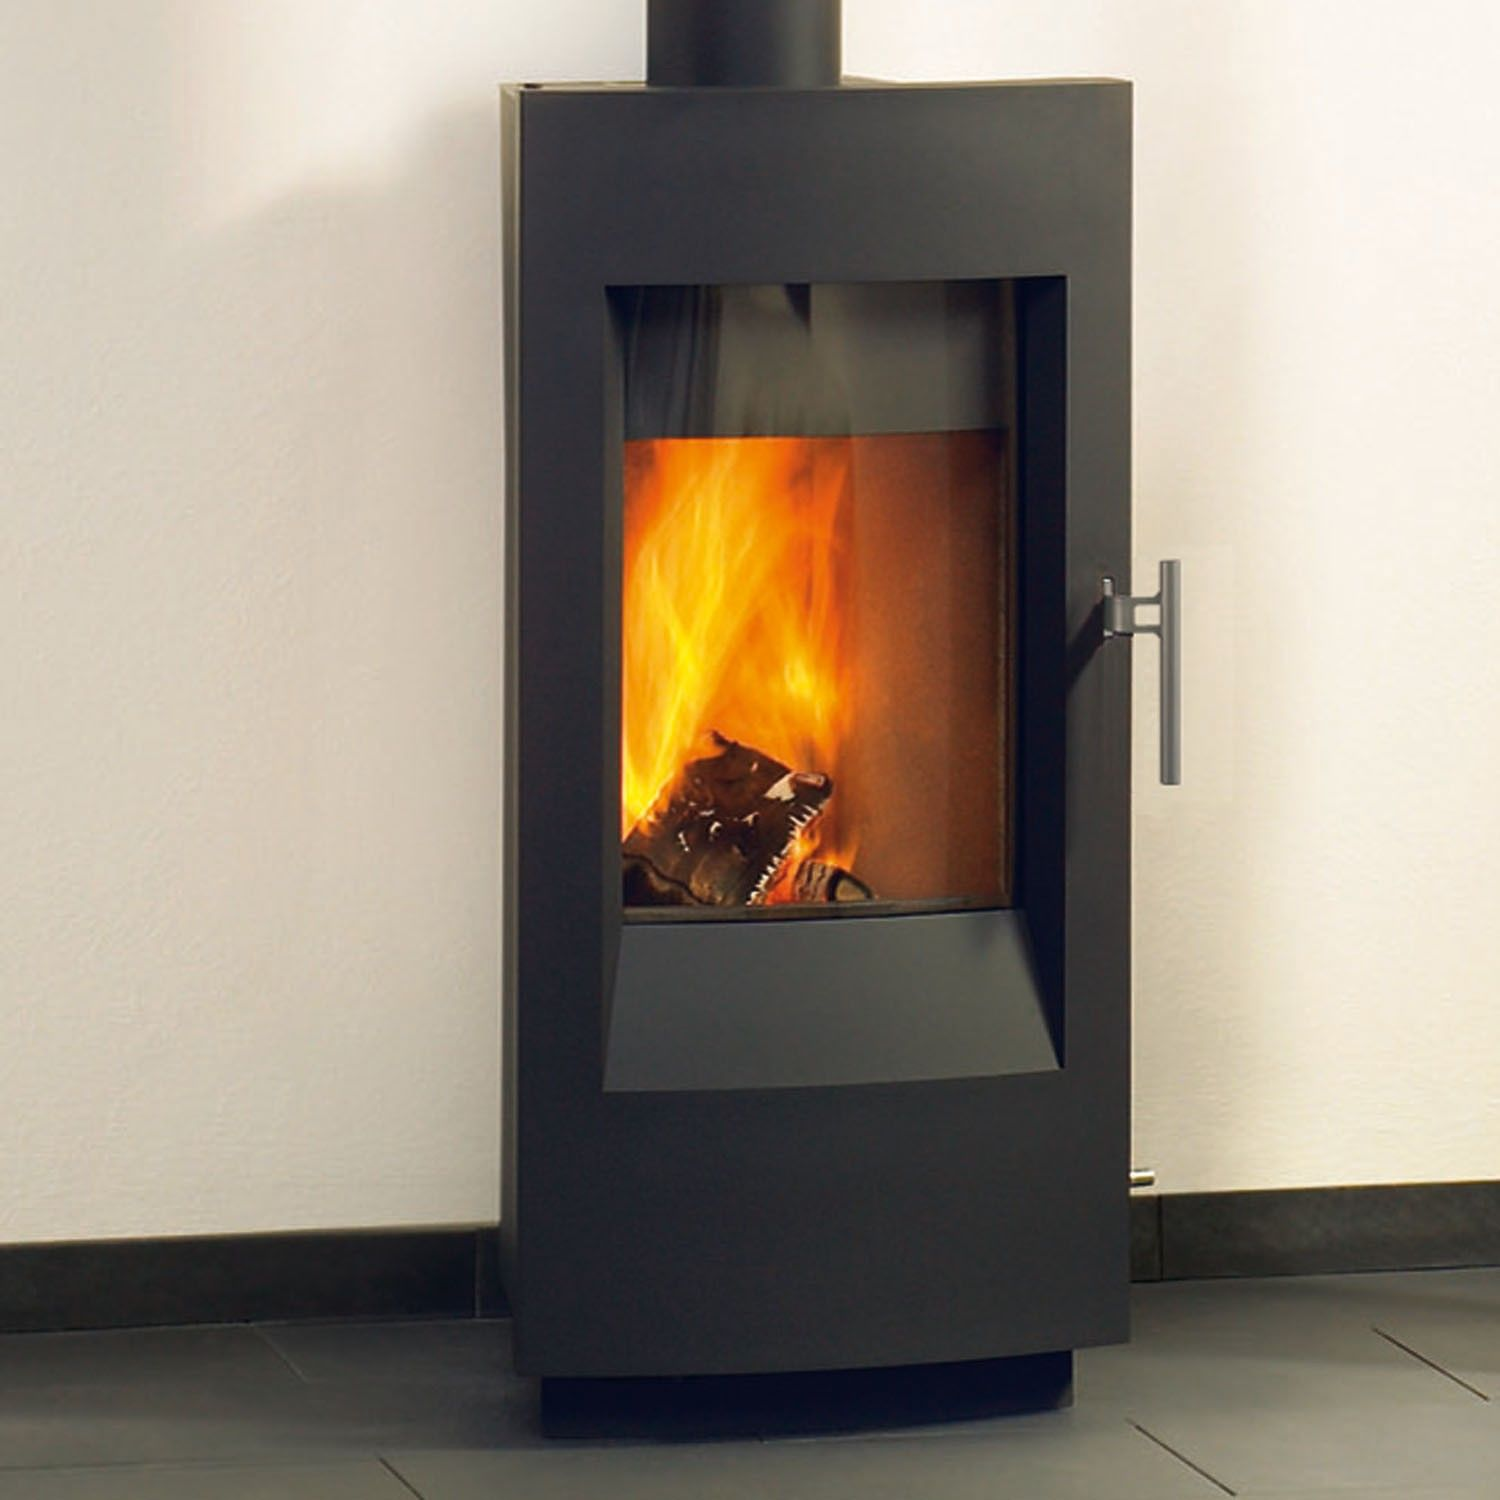 Tula 8190 wood stove in charcoal, by Hearthstone. Heats up to 1200 sq. - Tula 8190 Wood Stove In Charcoal, By Hearthstone. Heats Up To 1200